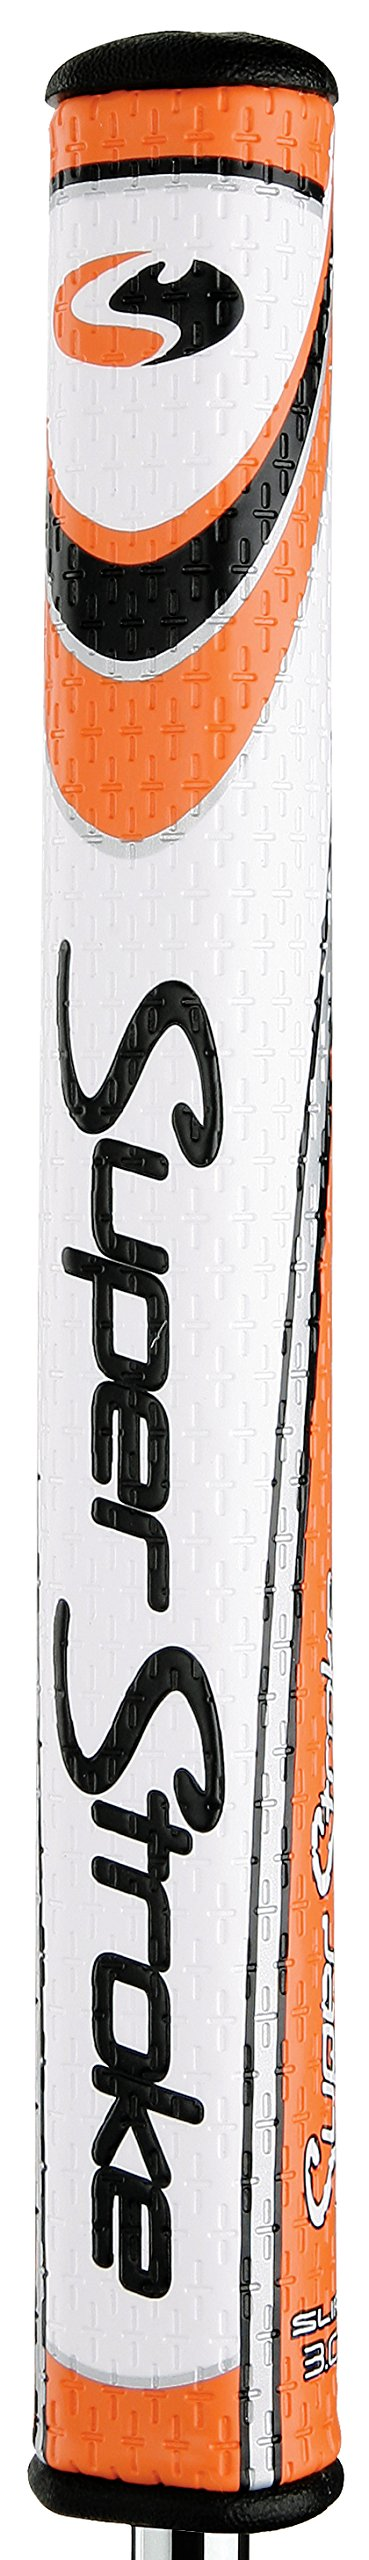 Super Stroke Slim 3.0 Putter Grip, Orange by SuperStroke